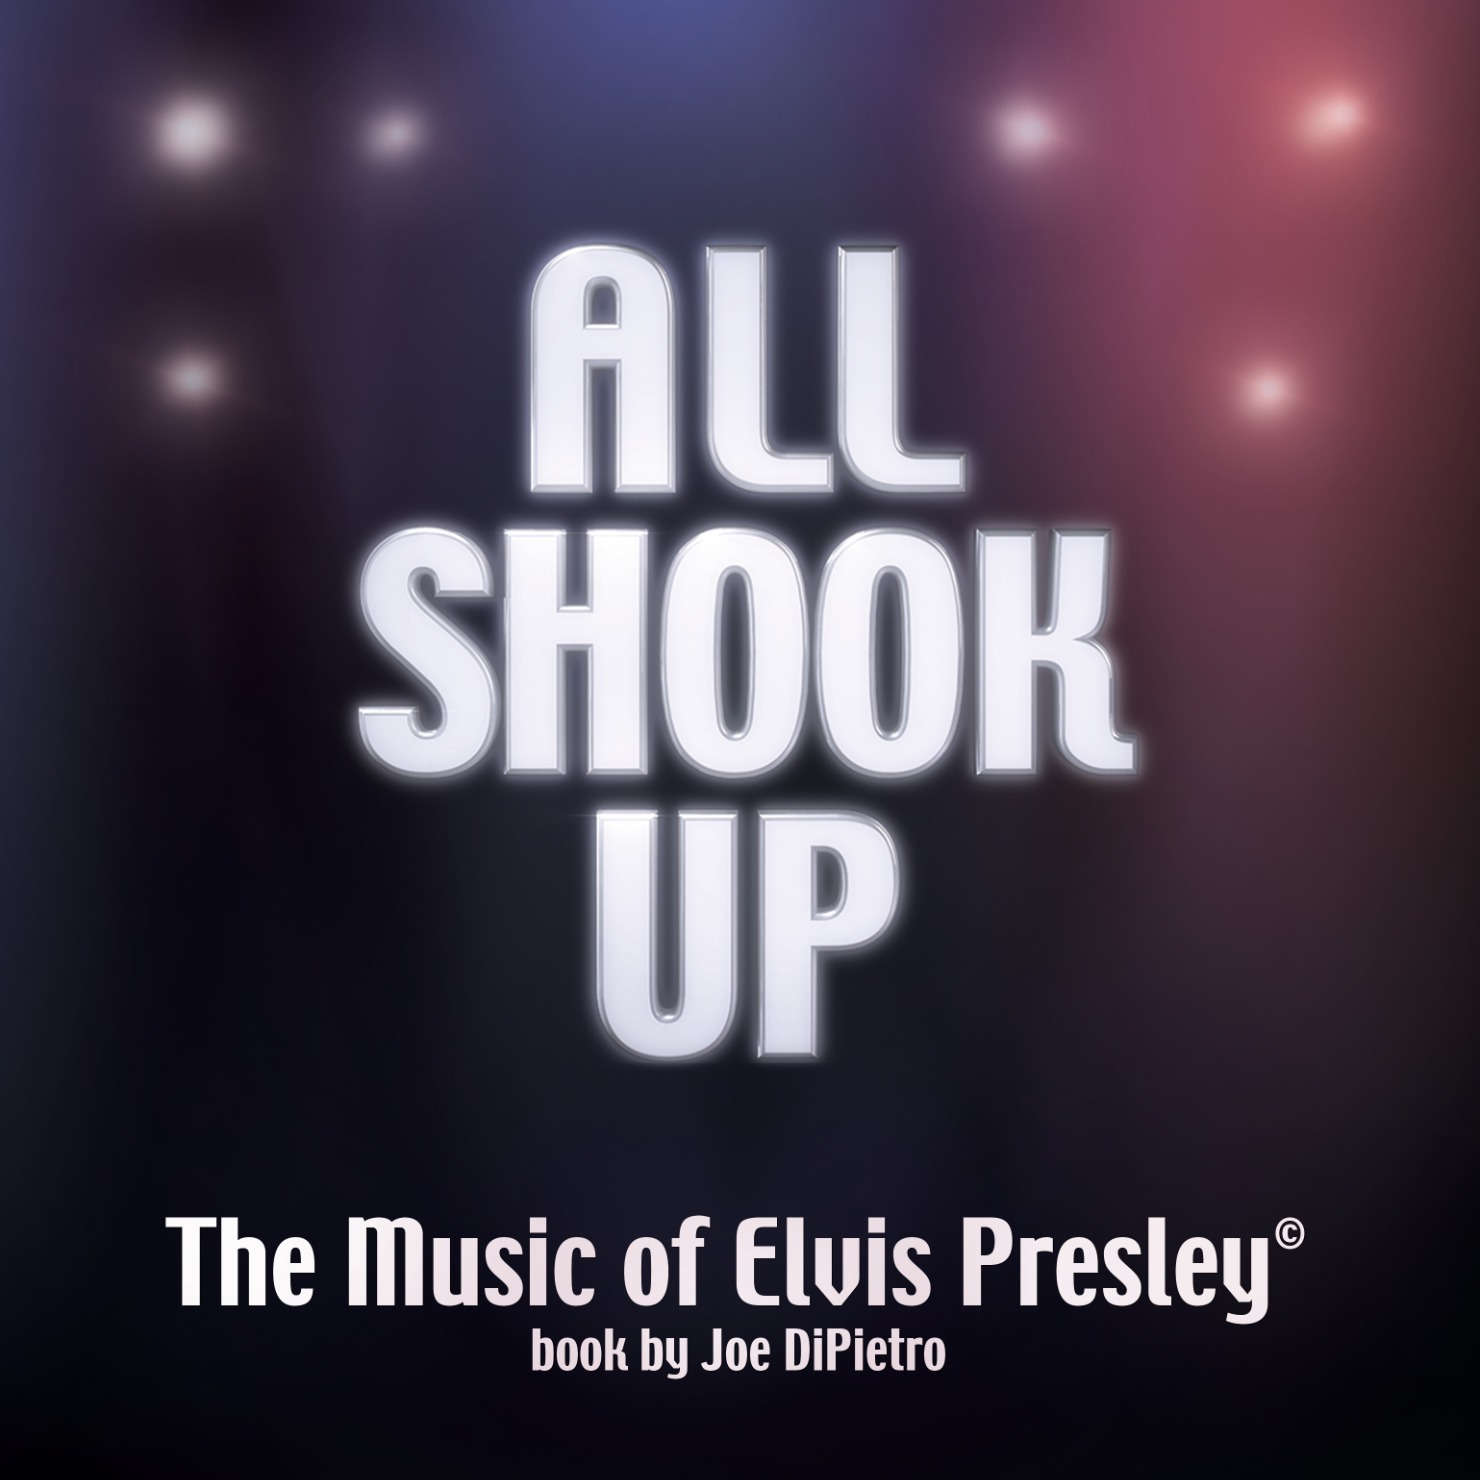 All Shook Up 2019